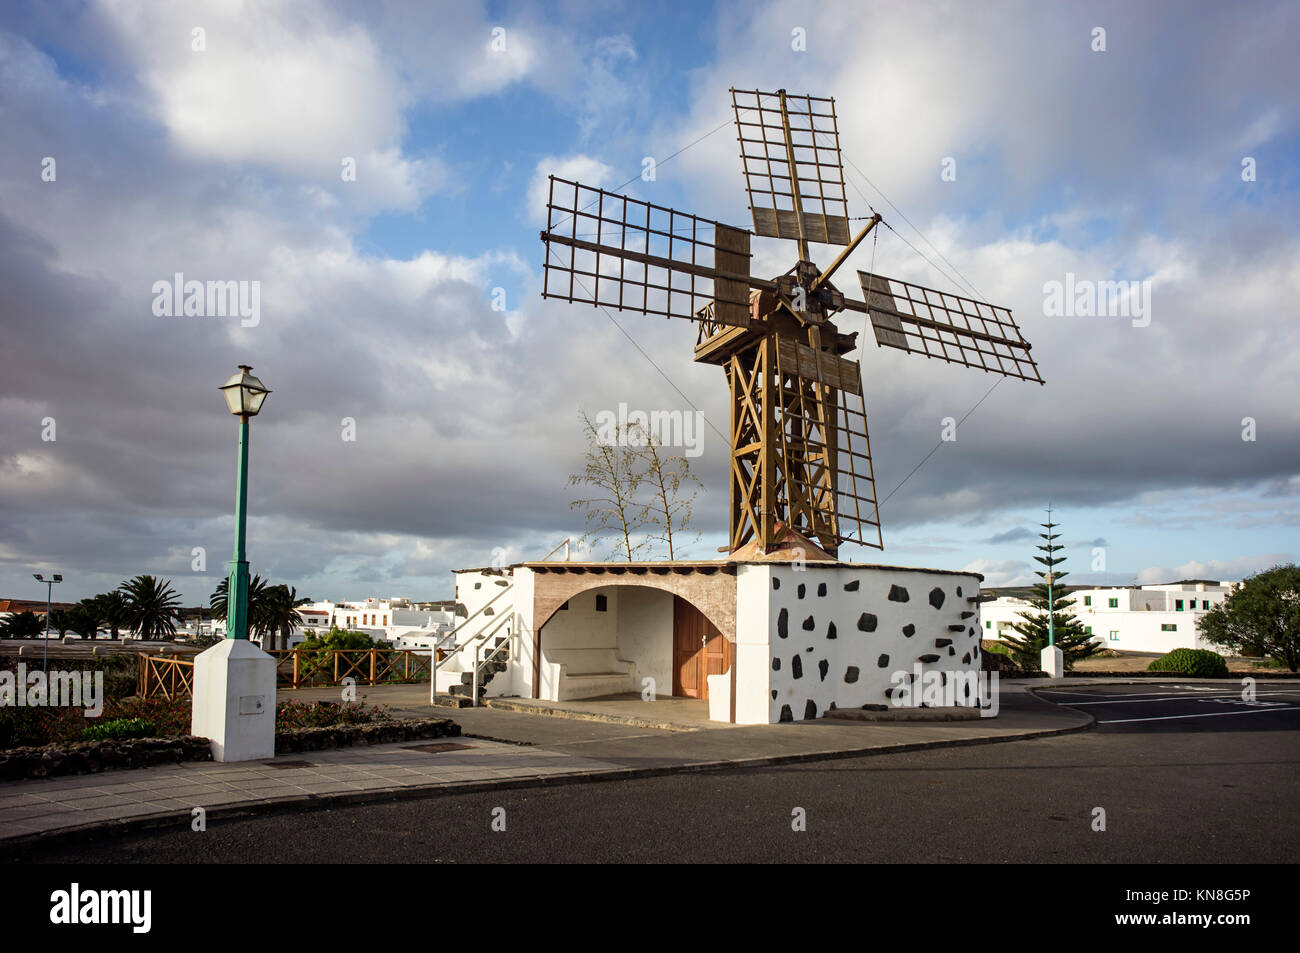 Wooden wind mill, Teguise,   Lanzarote, Canary Islands, Spain - Stock Image